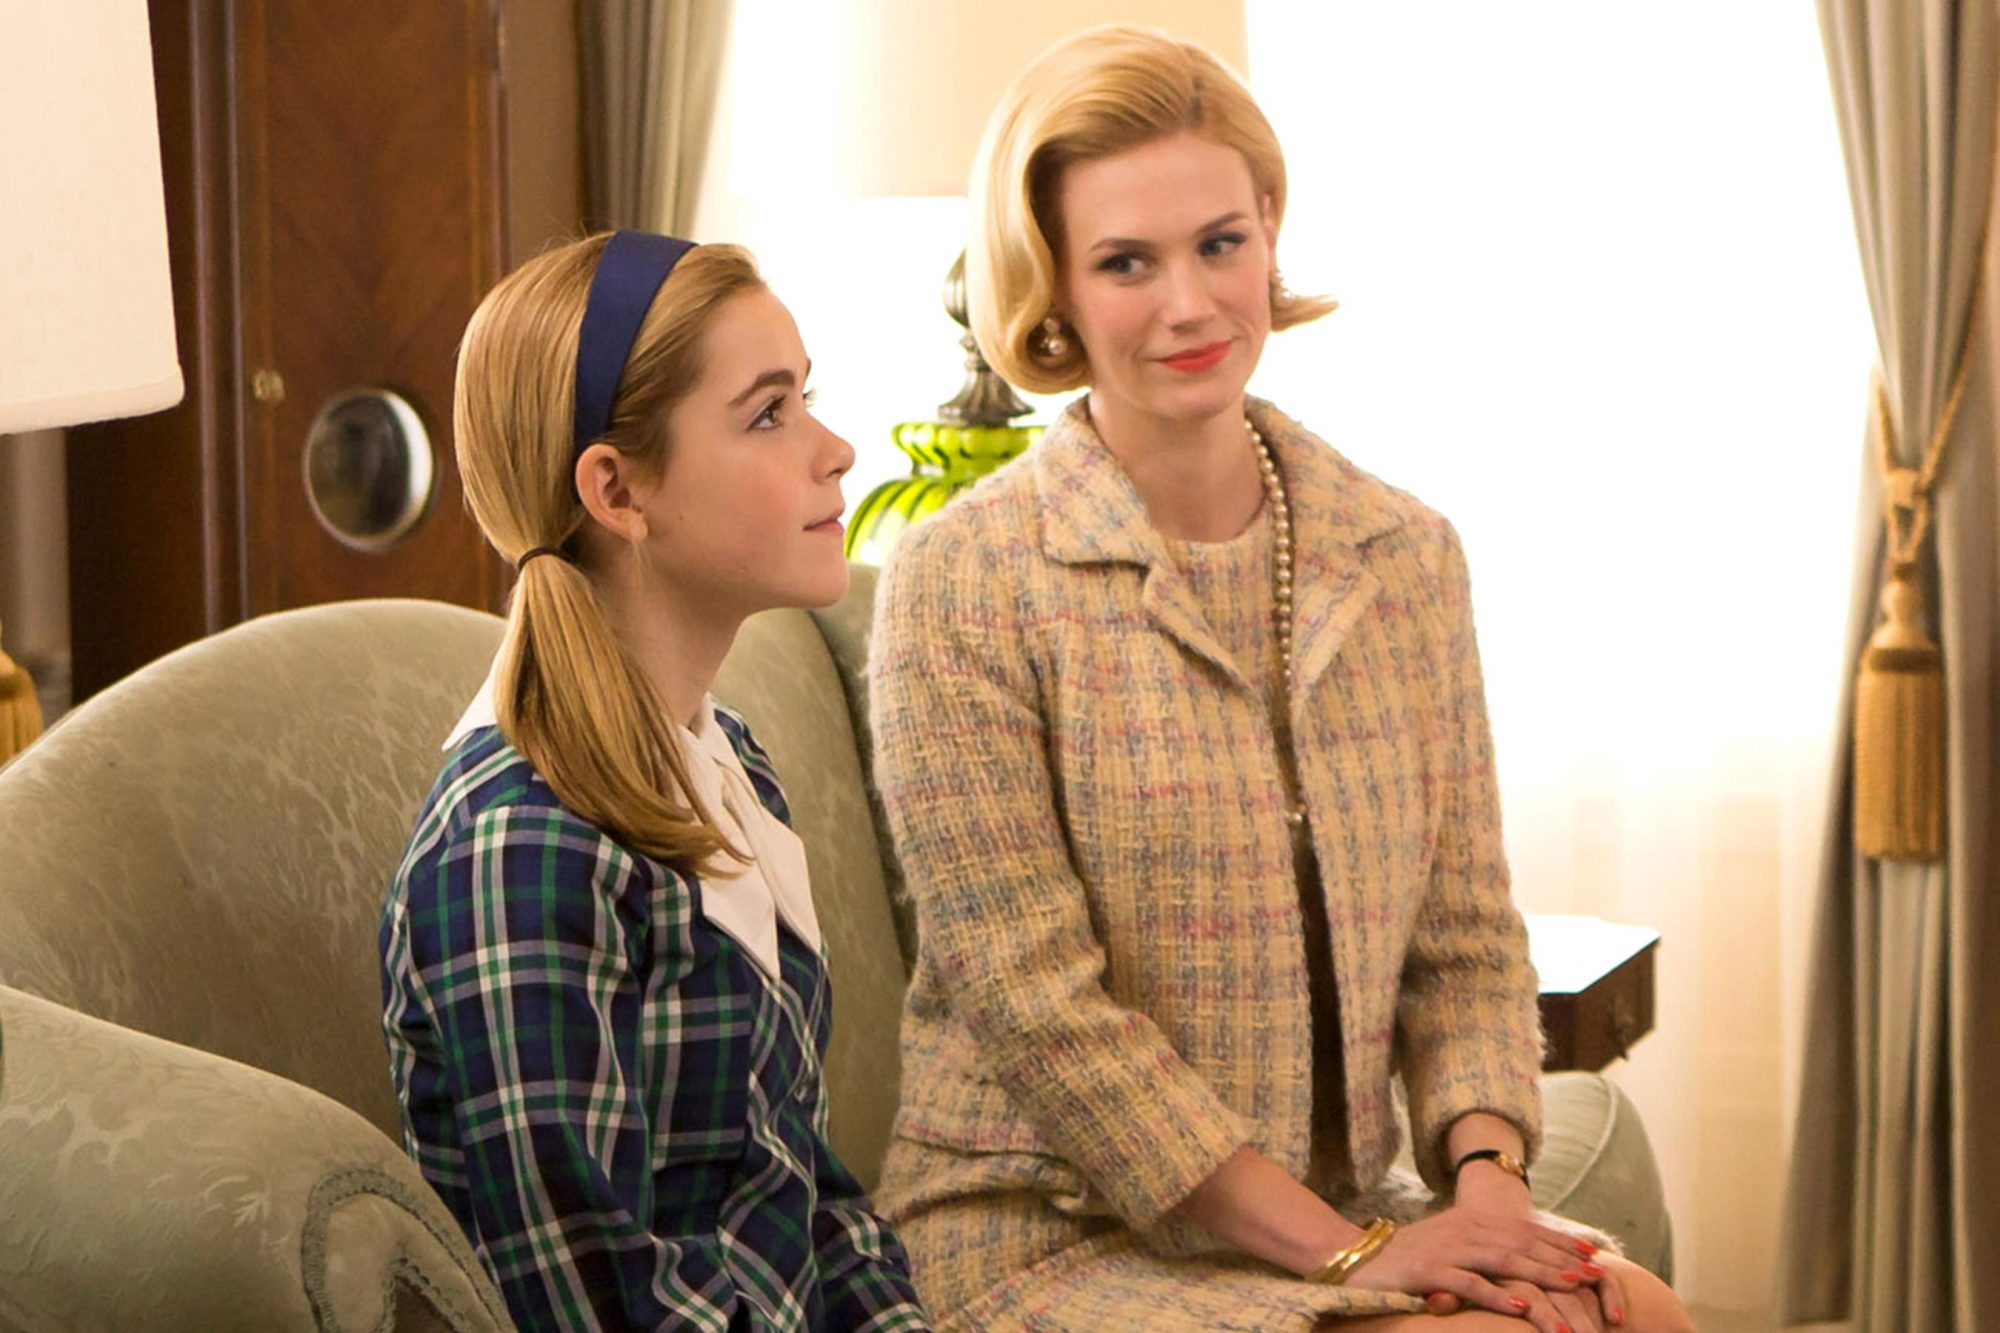 MAD MEN, (from left): Kiernan Shipka, January Jones, Deborah Geffner, 'The Quality of Mercy', (Season 6, ep. 612, aired June 16, 2013), 2007-. photo: Jessica Brooks / © AMC / Courtesy: Everett Collection